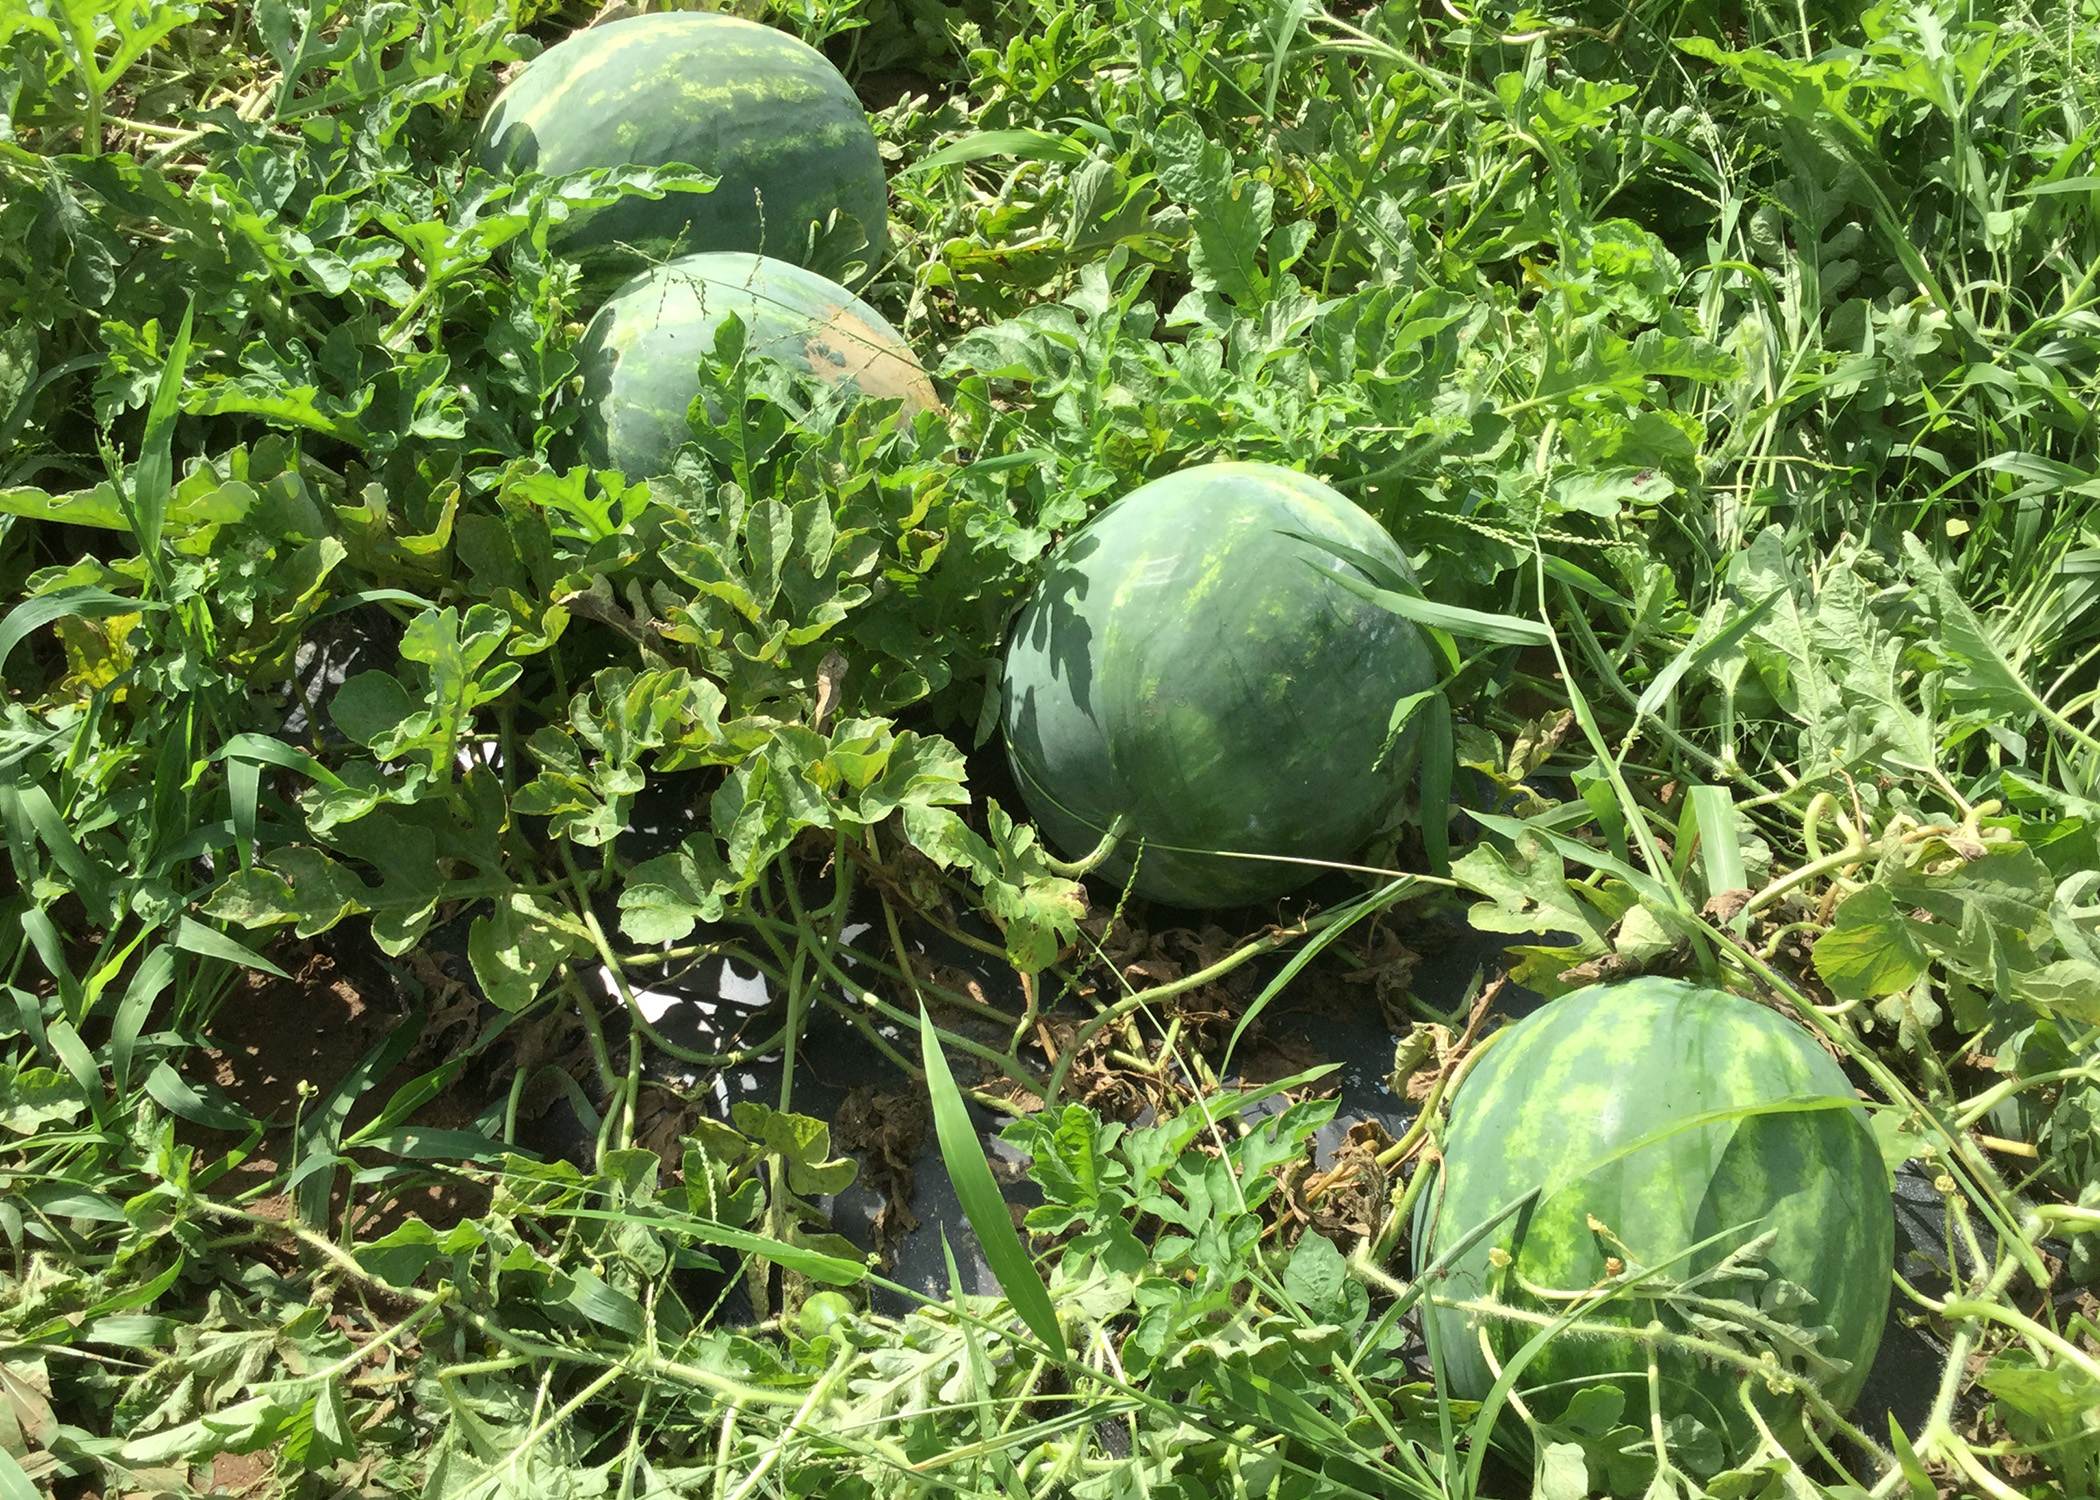 Watermelons Gain Ground As Soils Dry Out Temps Increase Mississippi State University Extension Service